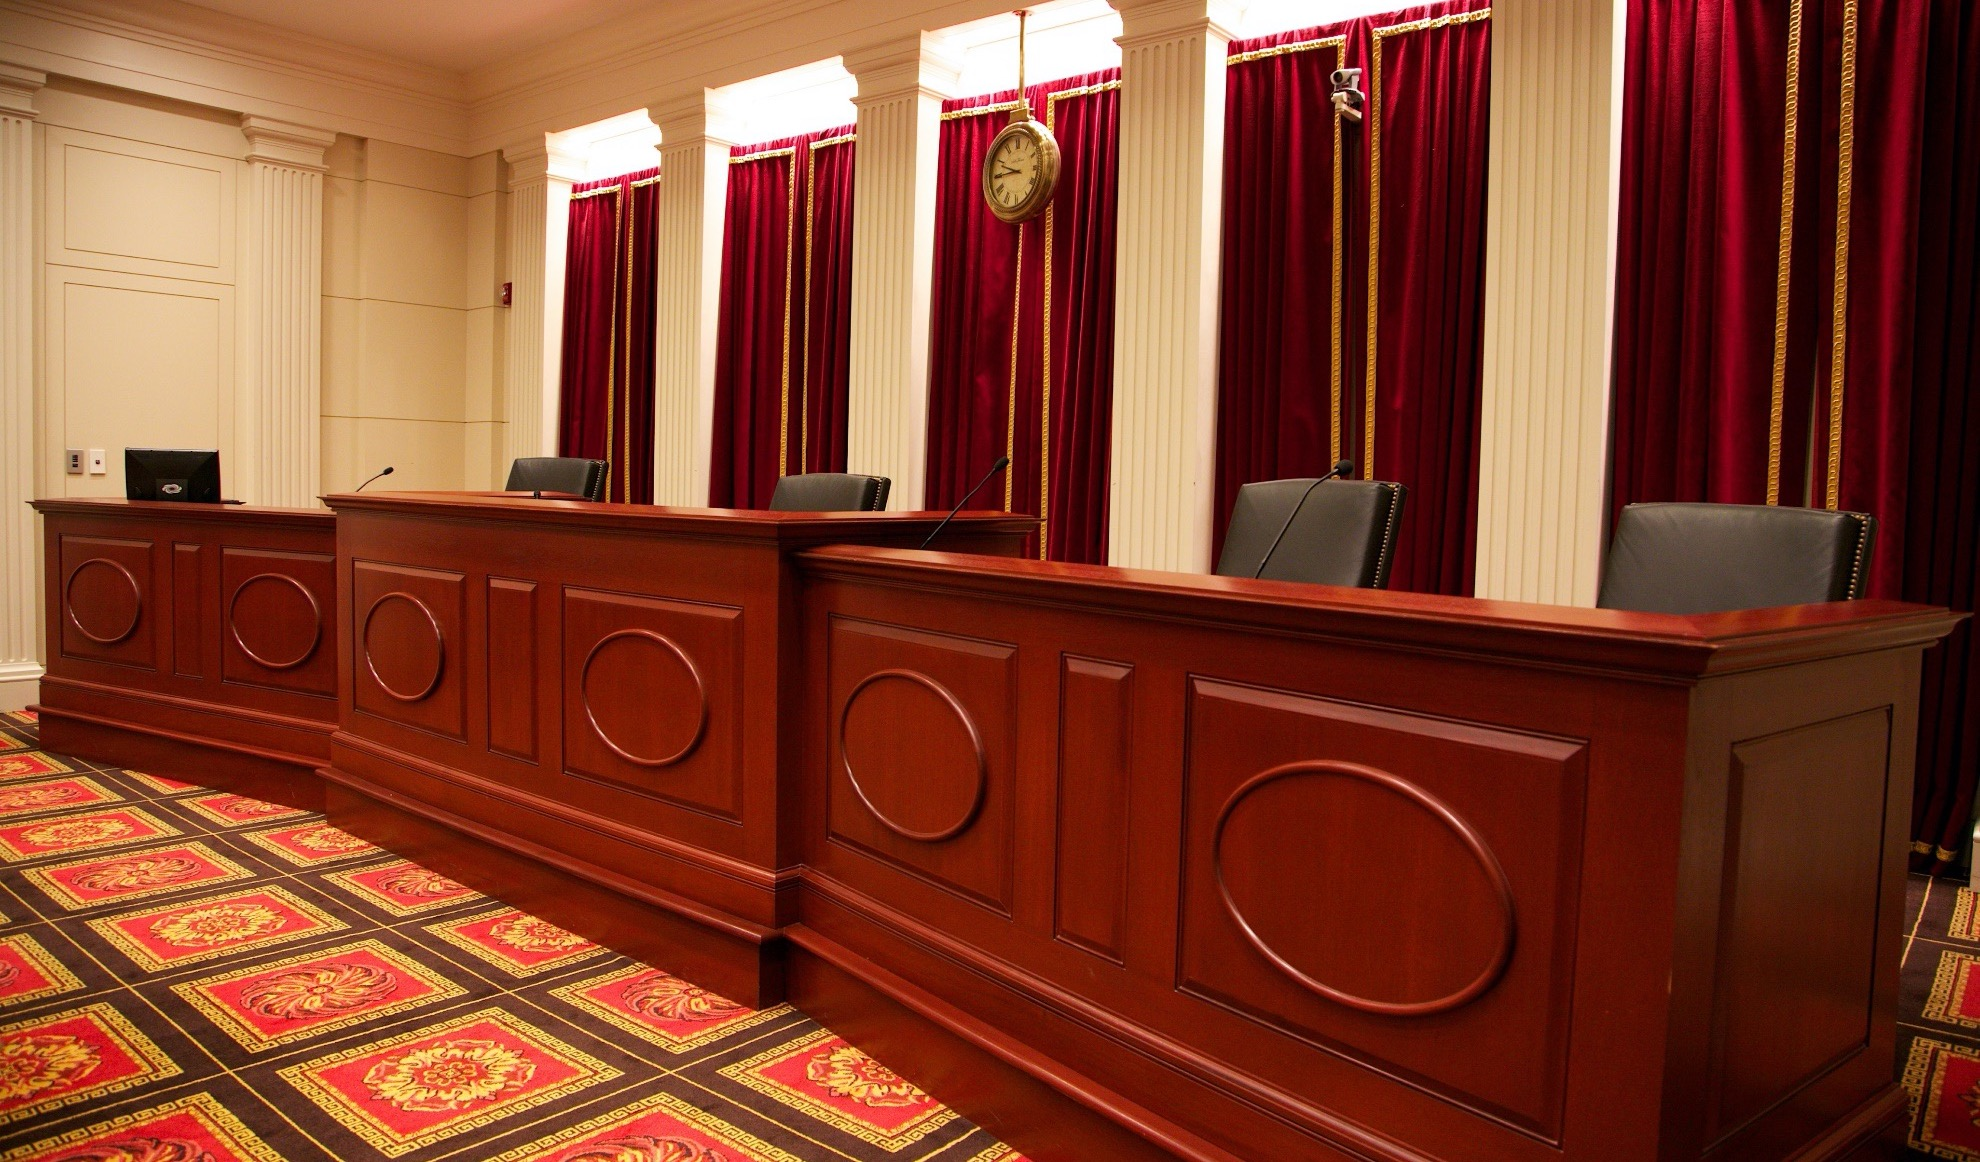 large wood-paneled judges' bench with four chairs